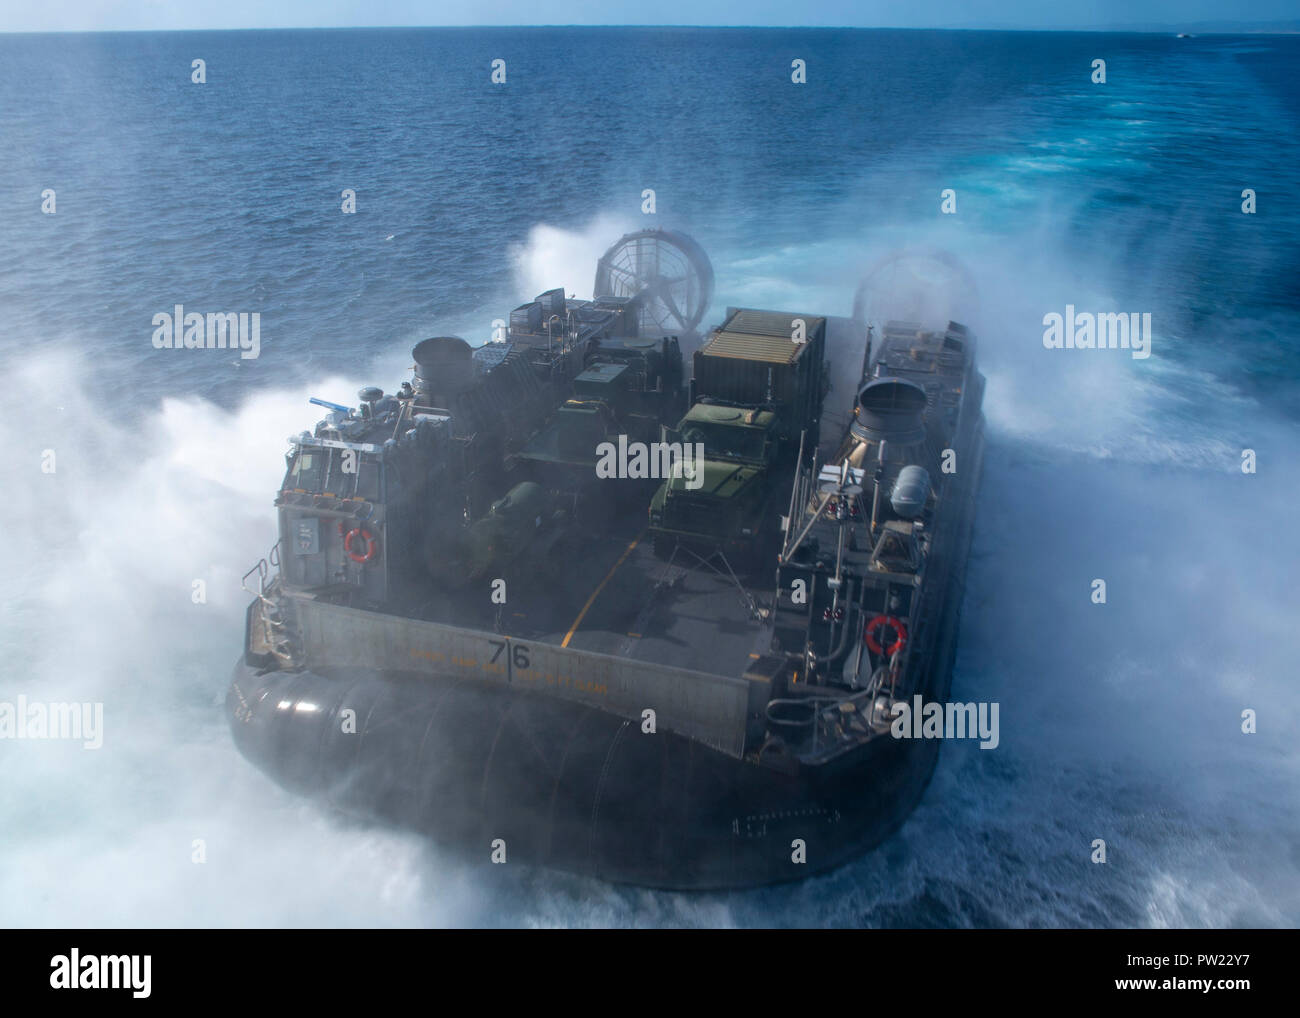 181010-N-DC385-1028 PACIFIC OCEAN (Oct. 10, 2018) Landing craft air cushion (LCAC) 76, assigned to Assault Craft Unit (ACU) 5, disembarks the well deck of the amphibious assault ship USS Bonhomme Richard (LHD 6). Bonhomme Richard is operating in the U.S. 3rd Fleet area of operations. (U.S. Navy photo by Mass Communication Specialist 3rd Class Cosmo Walrath) - Stock Image